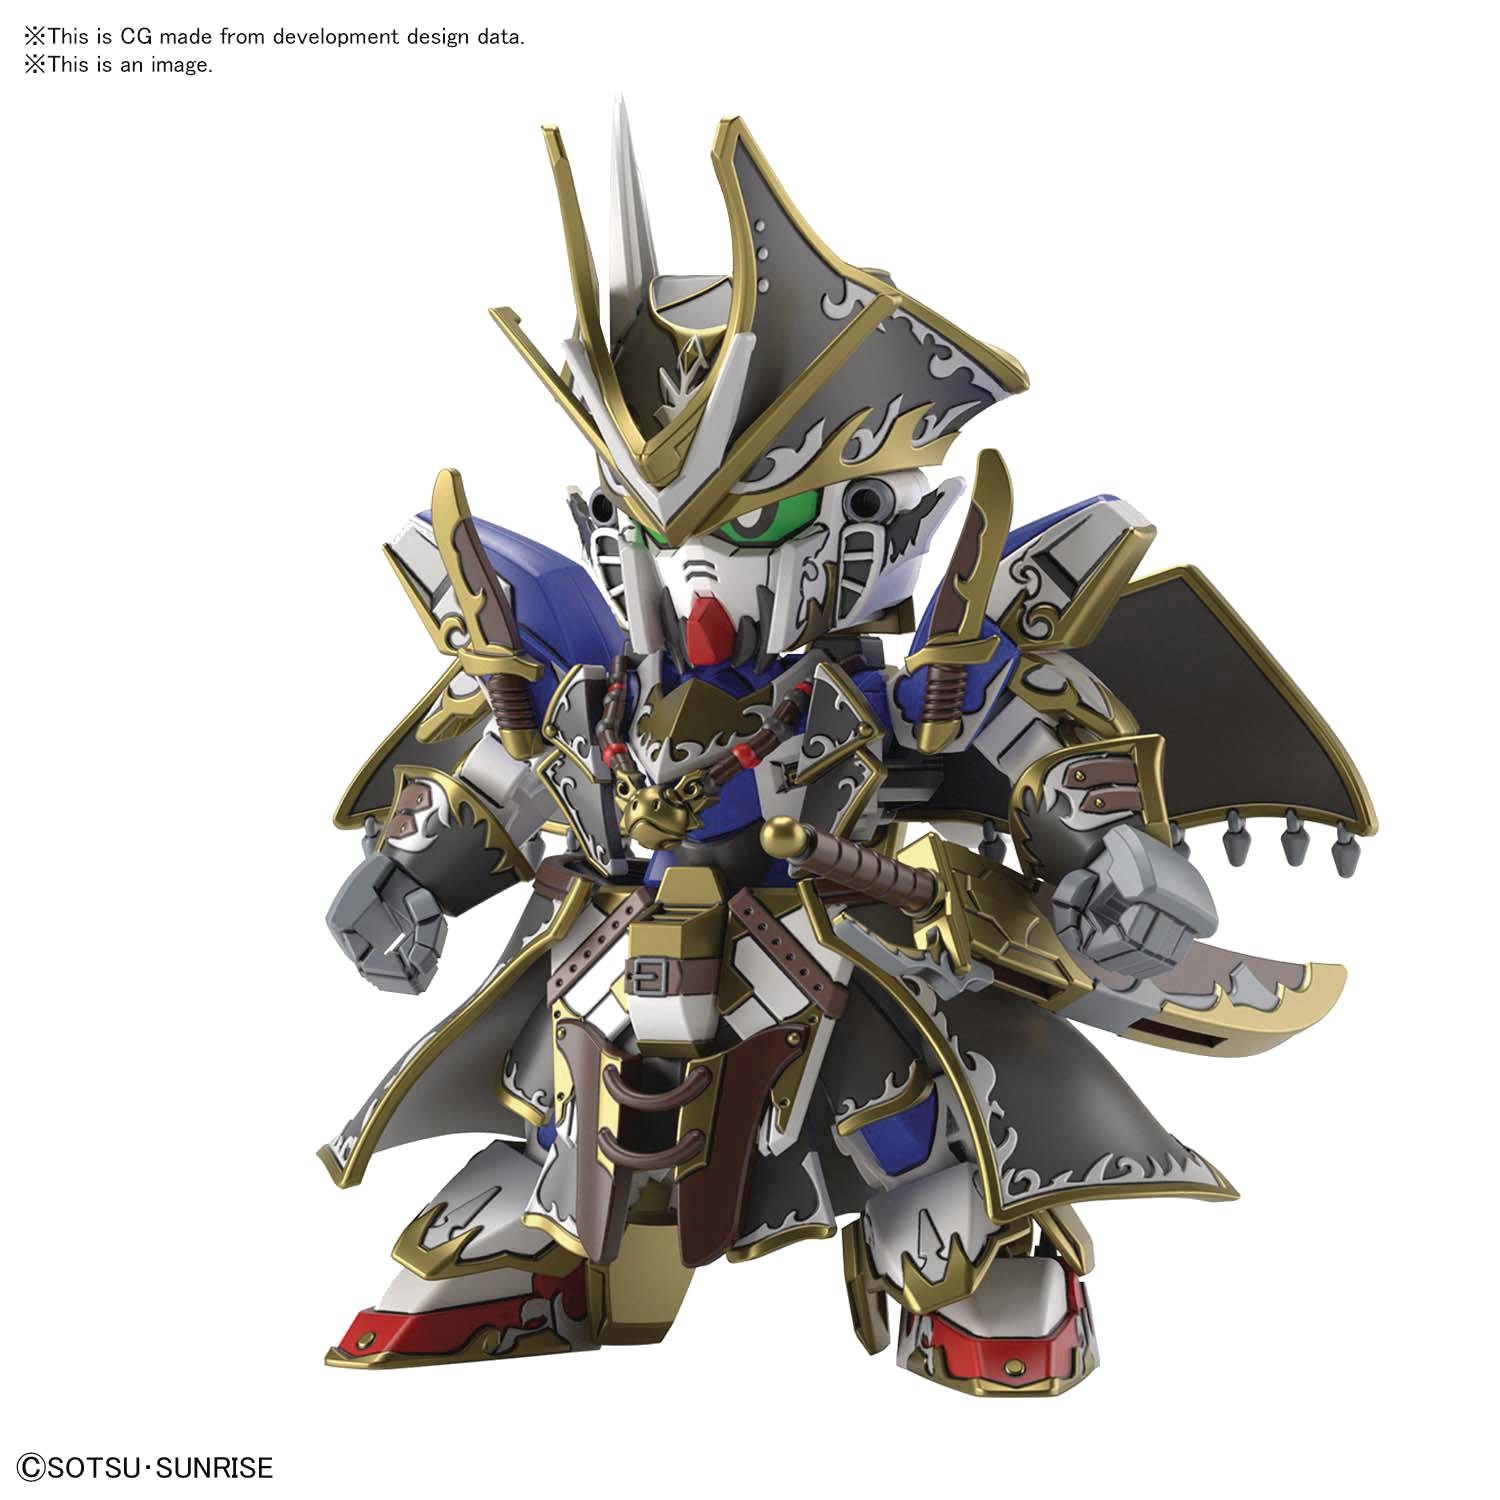 SD GUNDAM WORLD HEROES 04 BENJAMIN V2 GUNDAM MODEL KIT